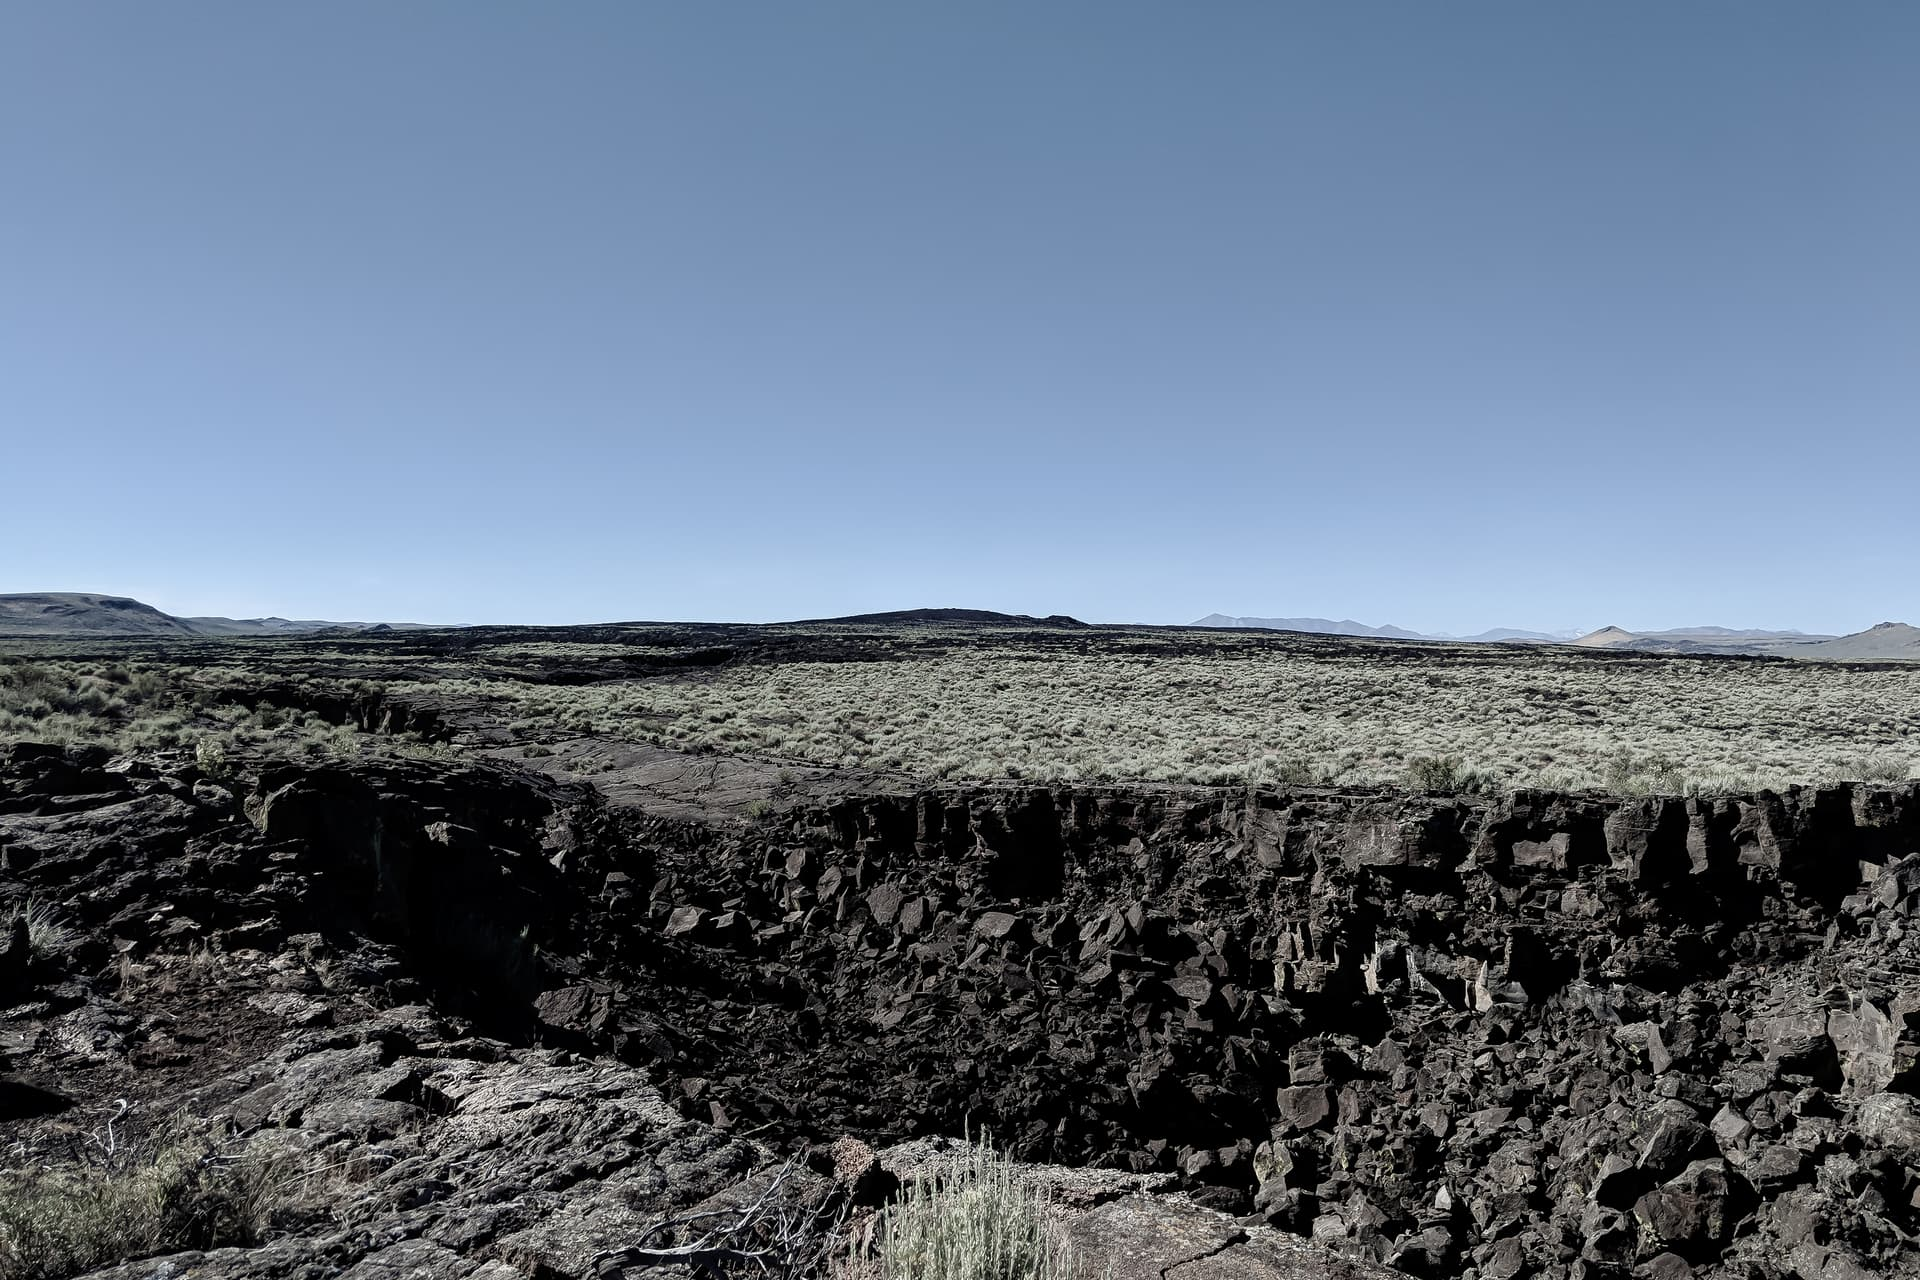 A U-shaped dark basalt boulder field, all that is left of a collapsed lava tube. Beyond it, desert scrubland, and finally distant mountain peaks. In the middle-distance is a low, black hill -- the shield volcano where the lava tube originated.